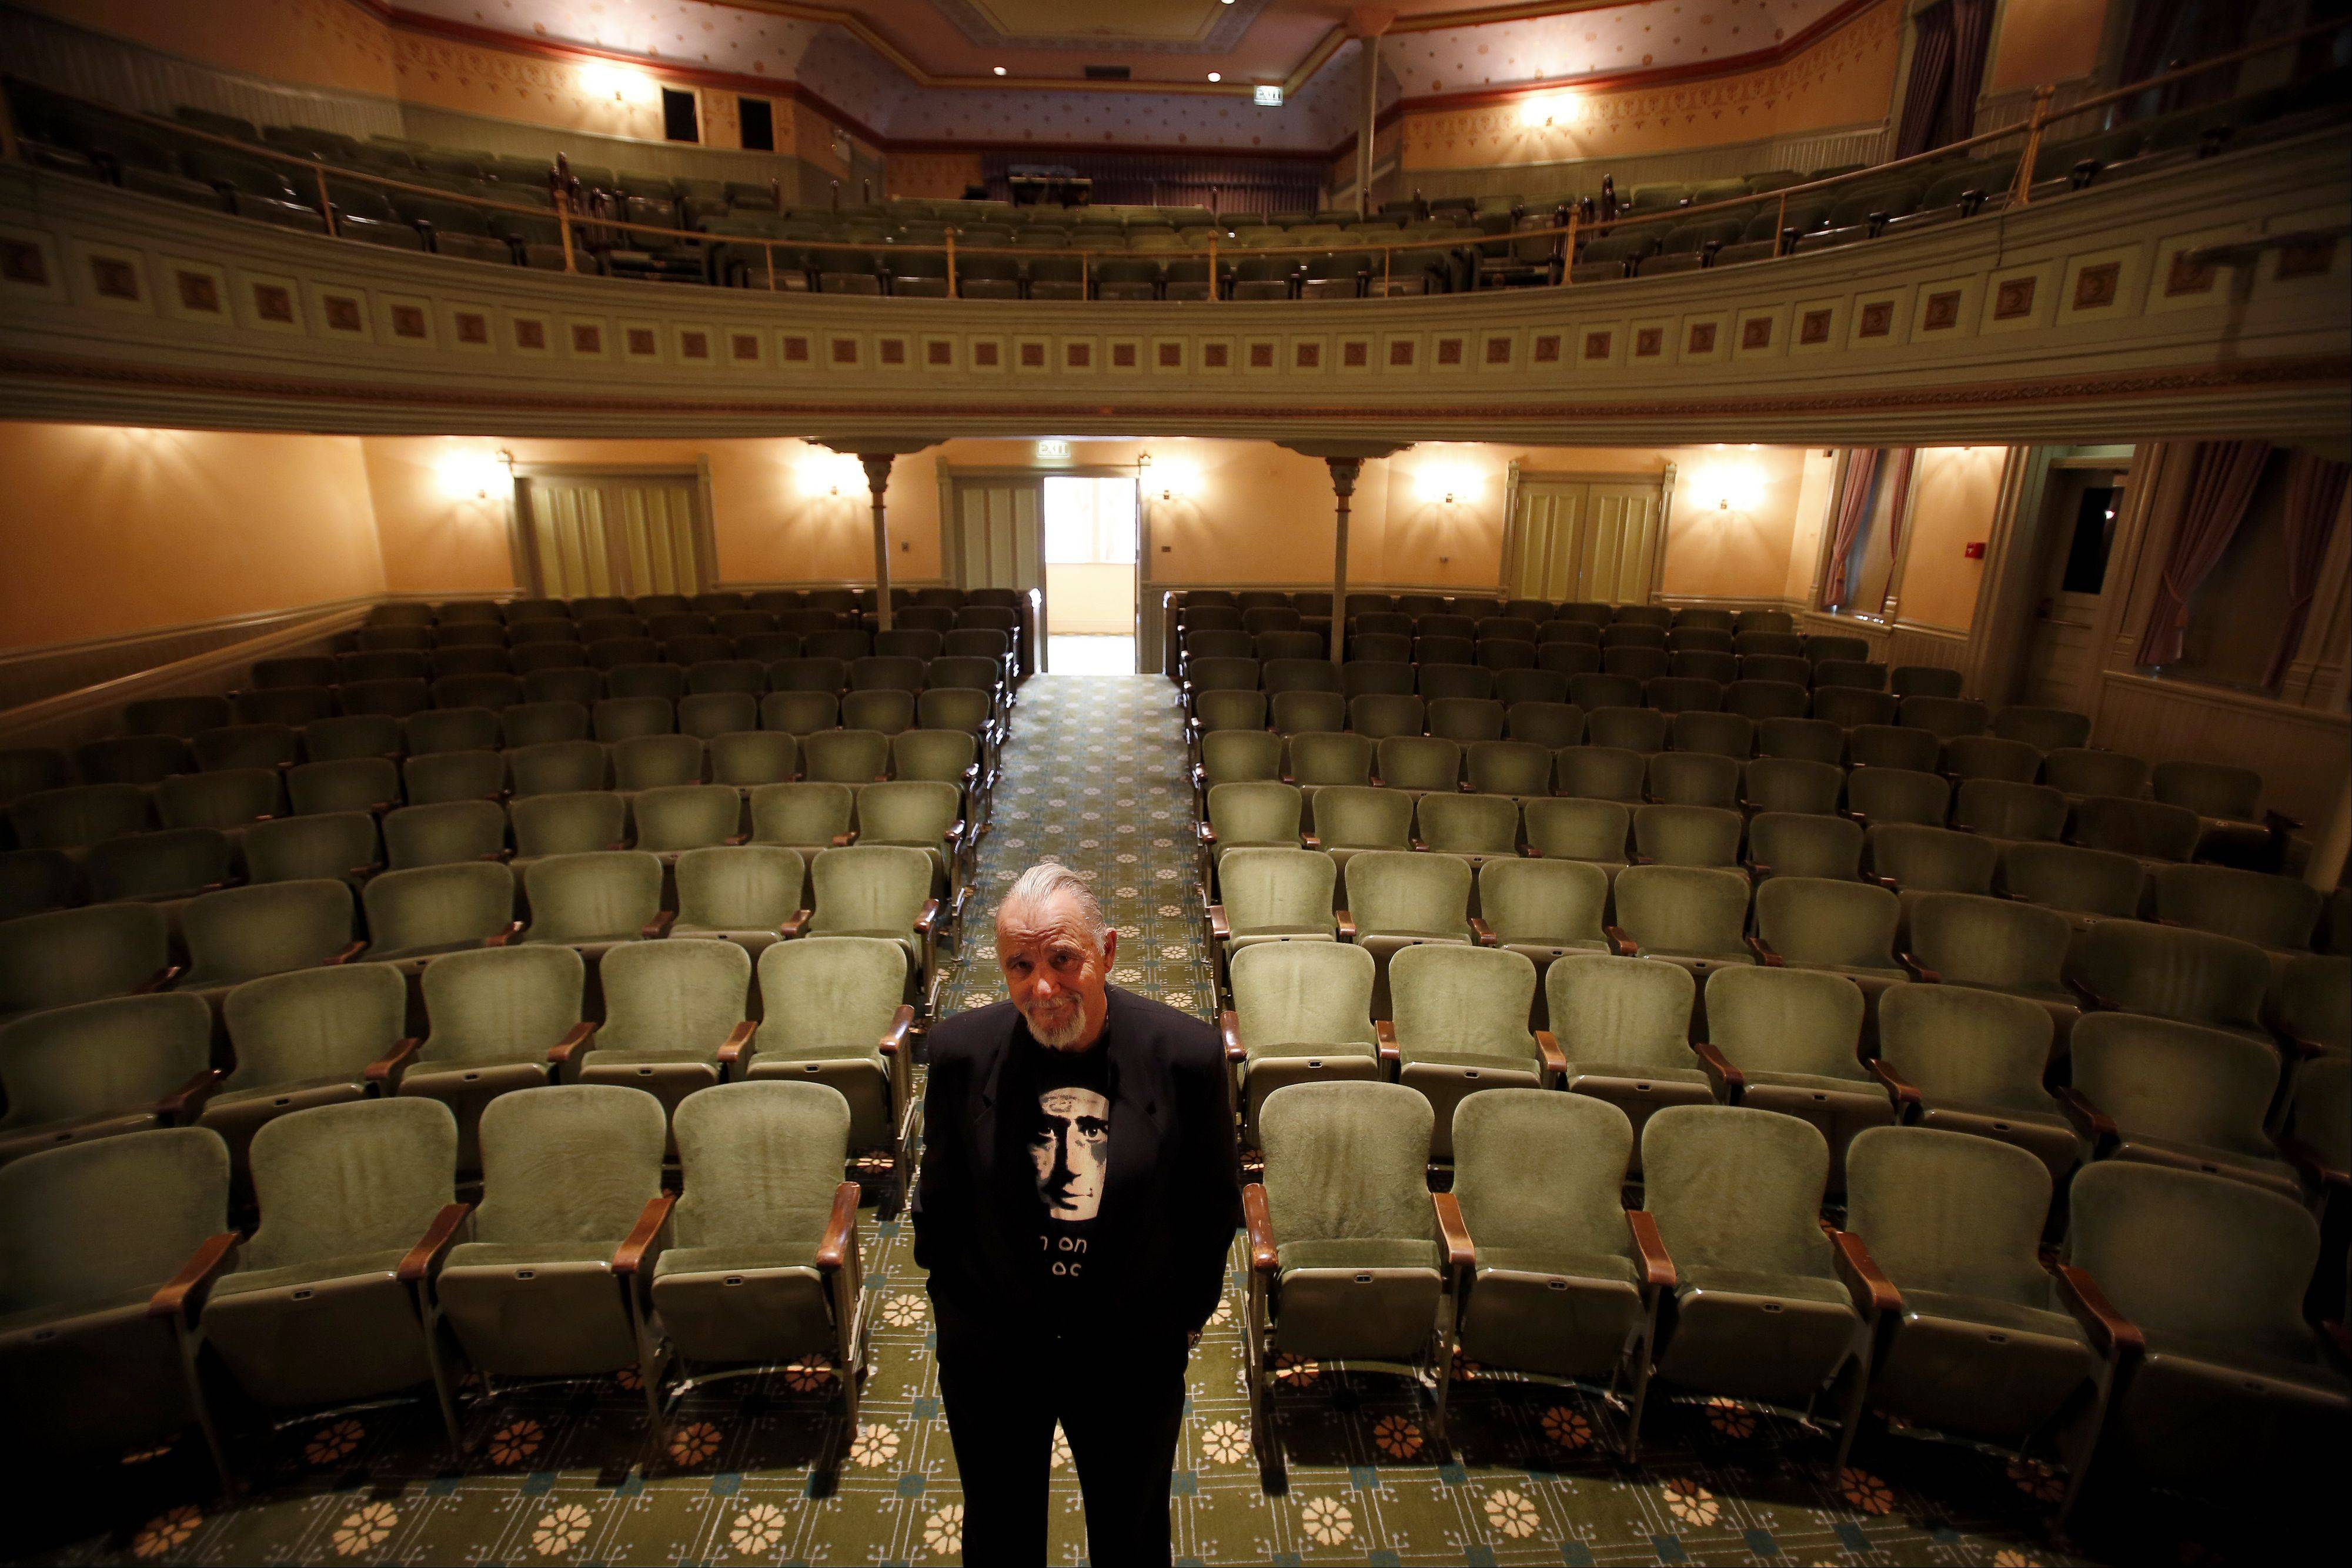 You can keep your grisly costume and gory movies. For true Halloween frights, nothing beats a scary story from master storyteller Jim May in the Woodstock Opera House.